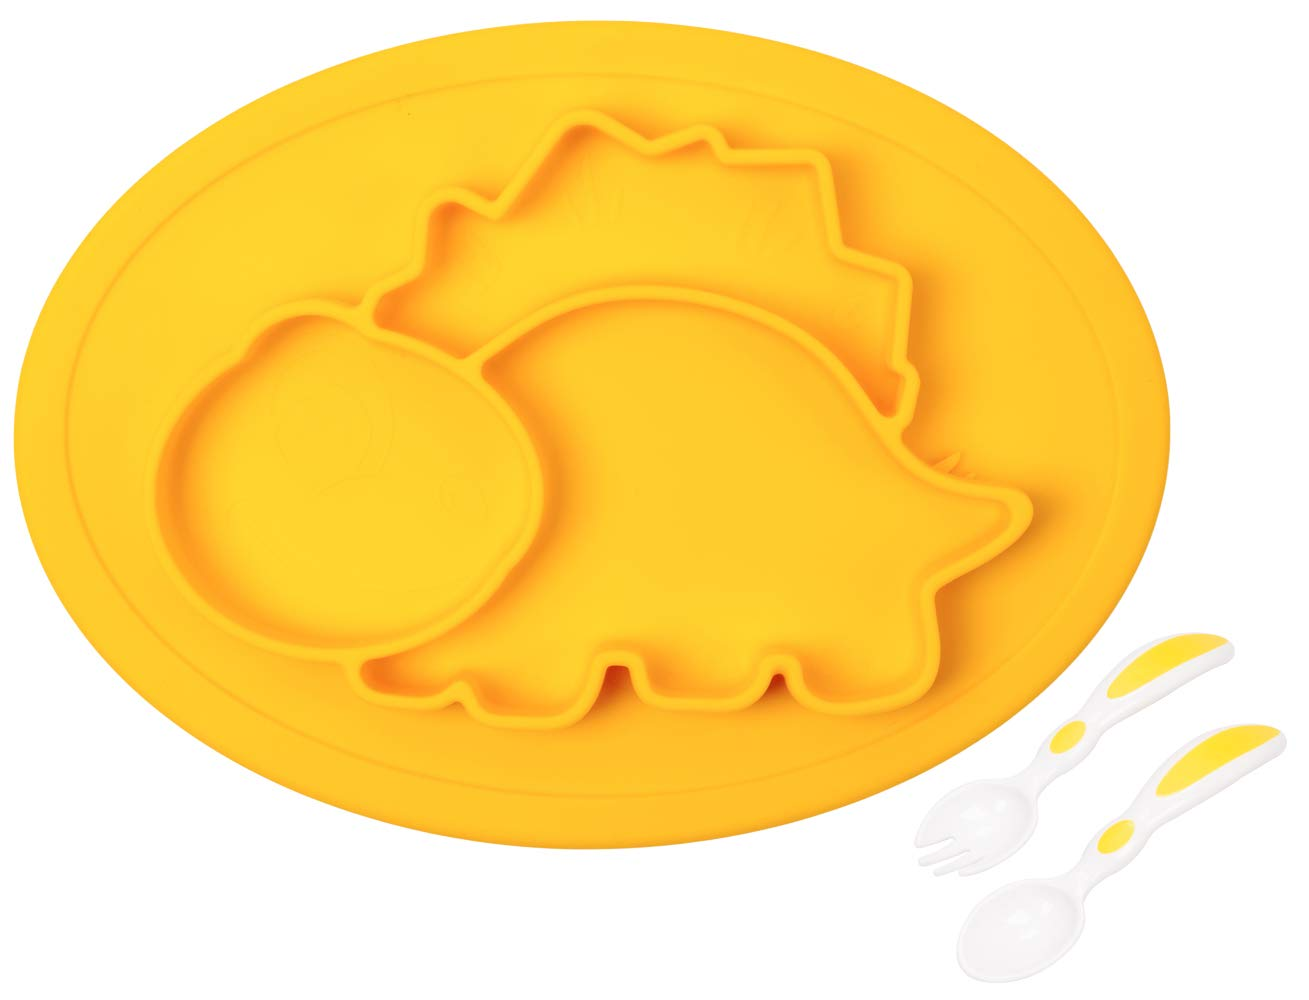 Baby Silicone Placemat, Non-Slip Feeding Plate for Toddlers Babies Kids with Strong Suction Fits Most Highchair Trays BPA-Free FDA Approved, Dishwasher and Microwave Safe Novos